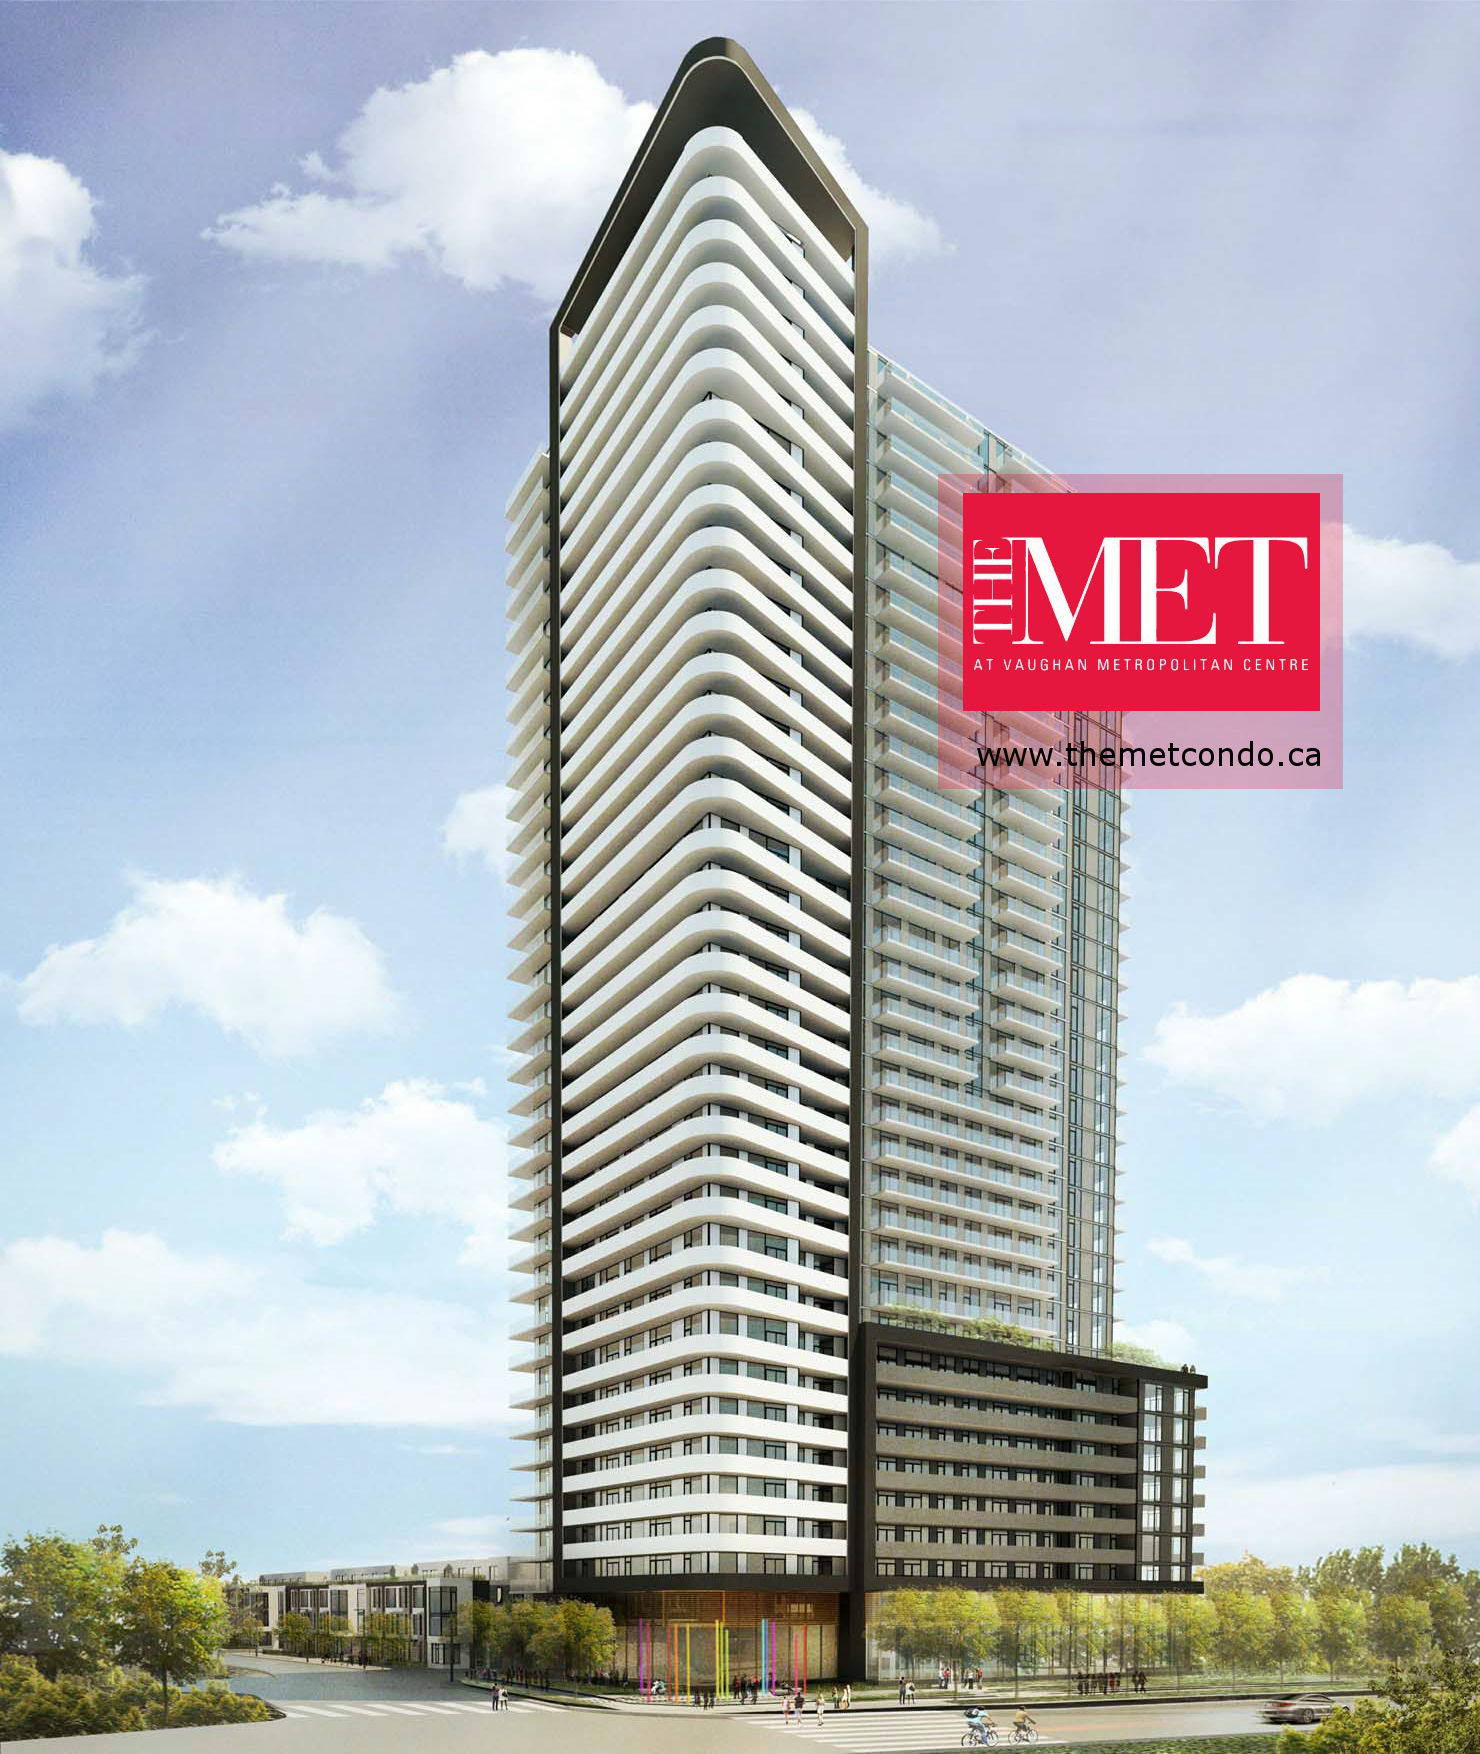 The Met Condos Rendered with Logo